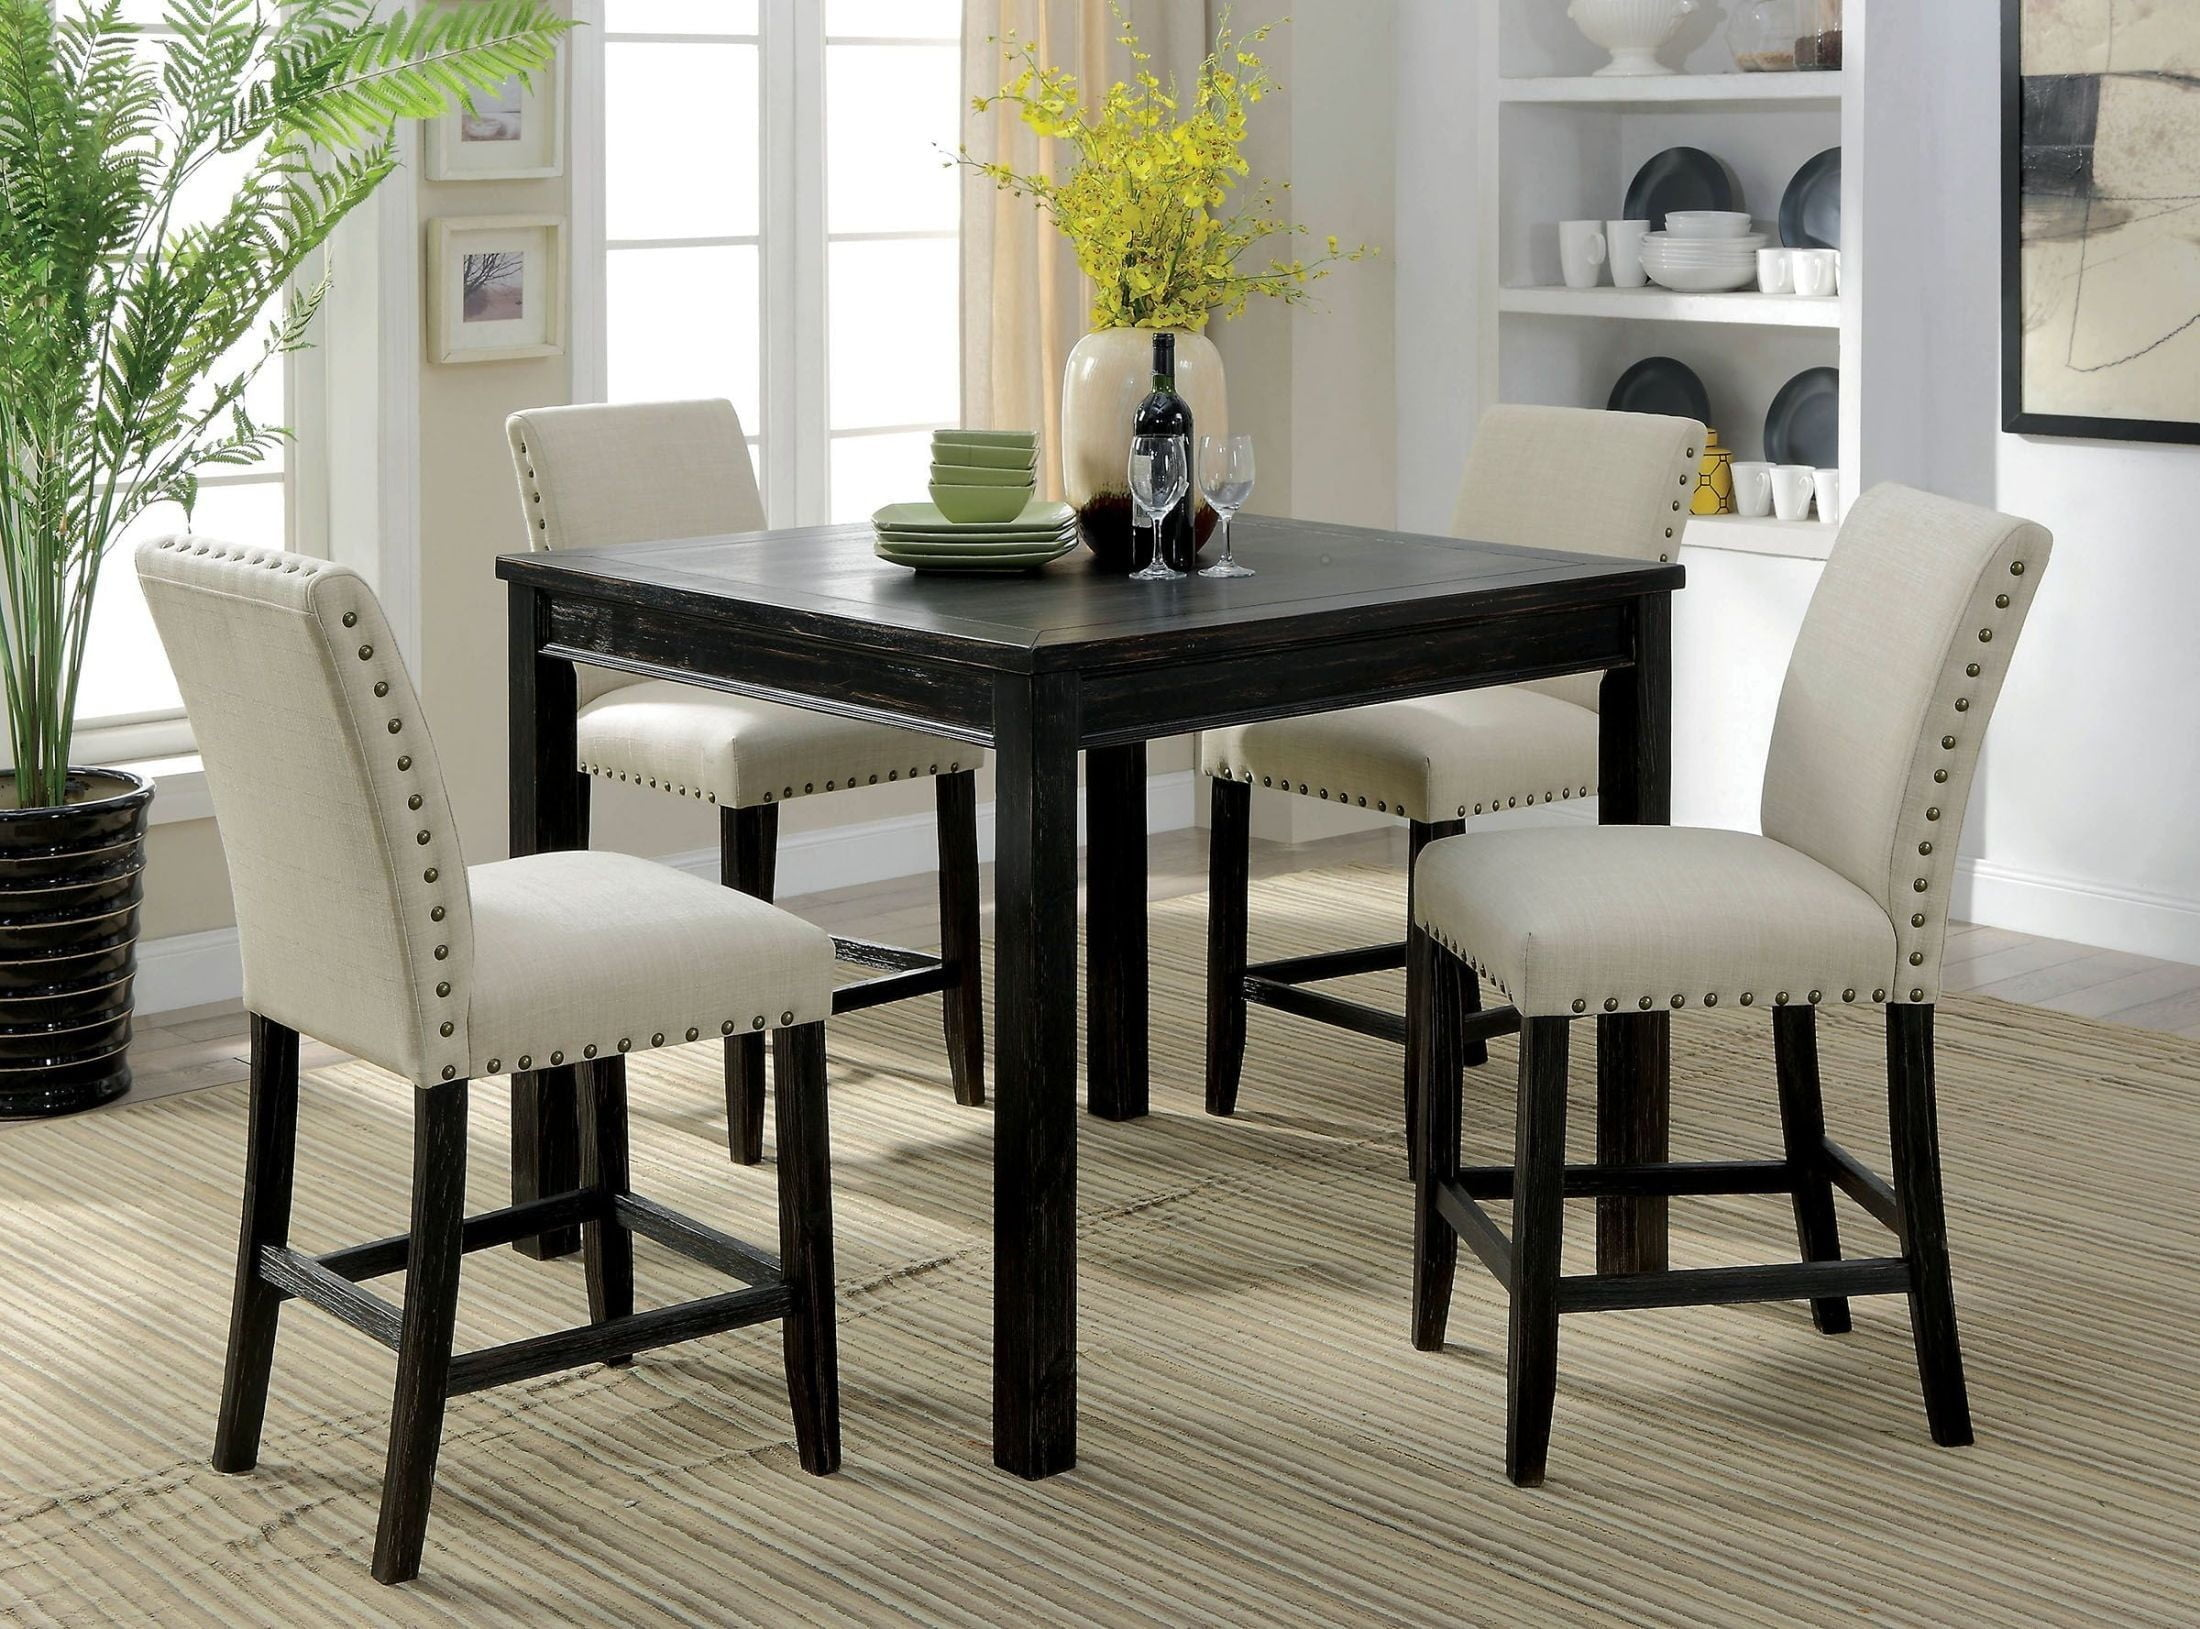 kristie antique black counter height dining table set from